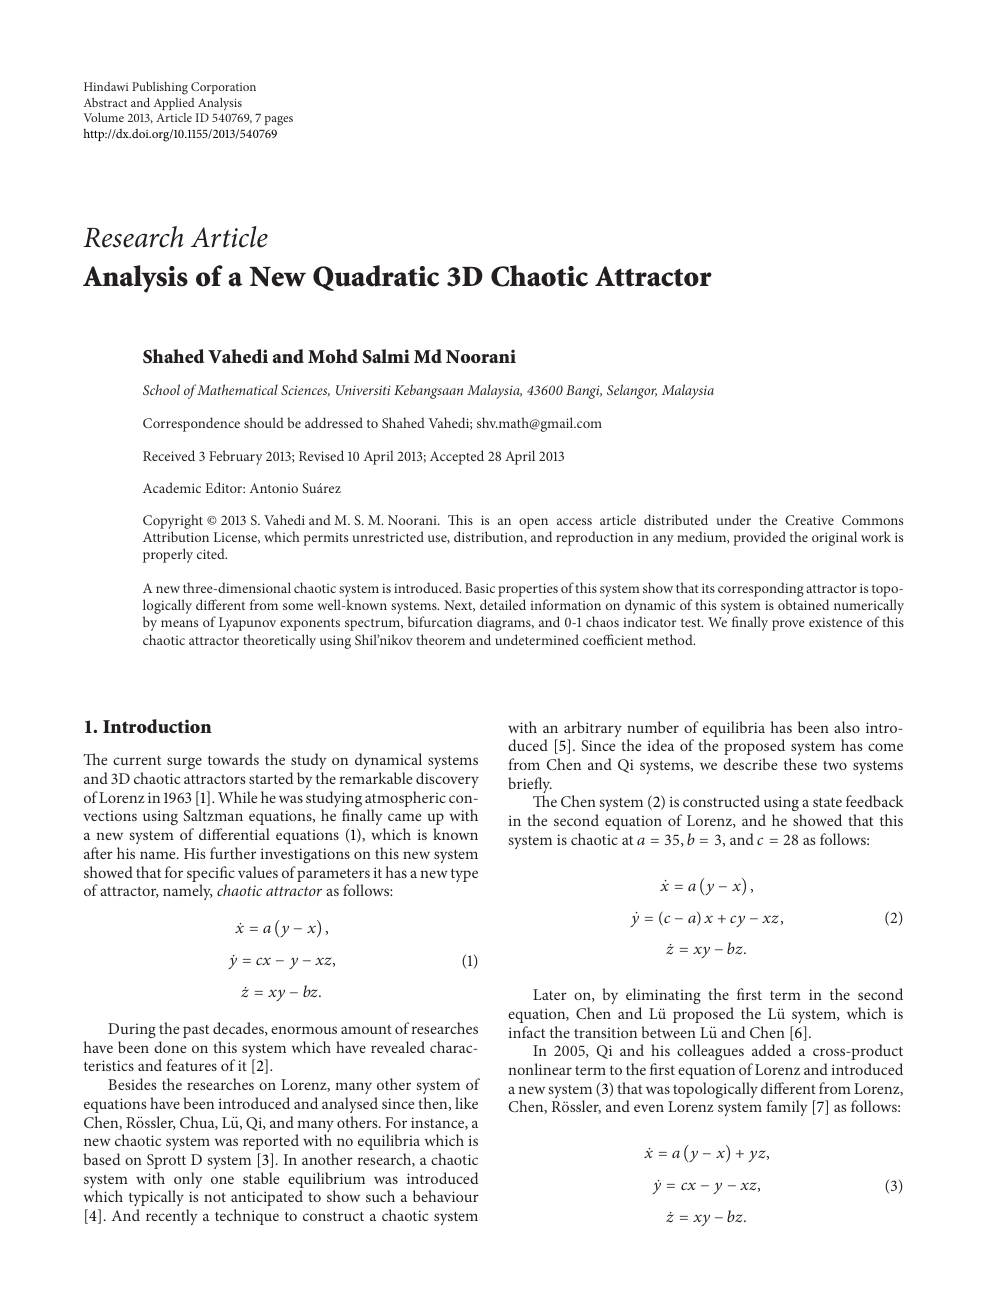 Analysis of a New Quadratic 3D Chaotic Attractor – topic of